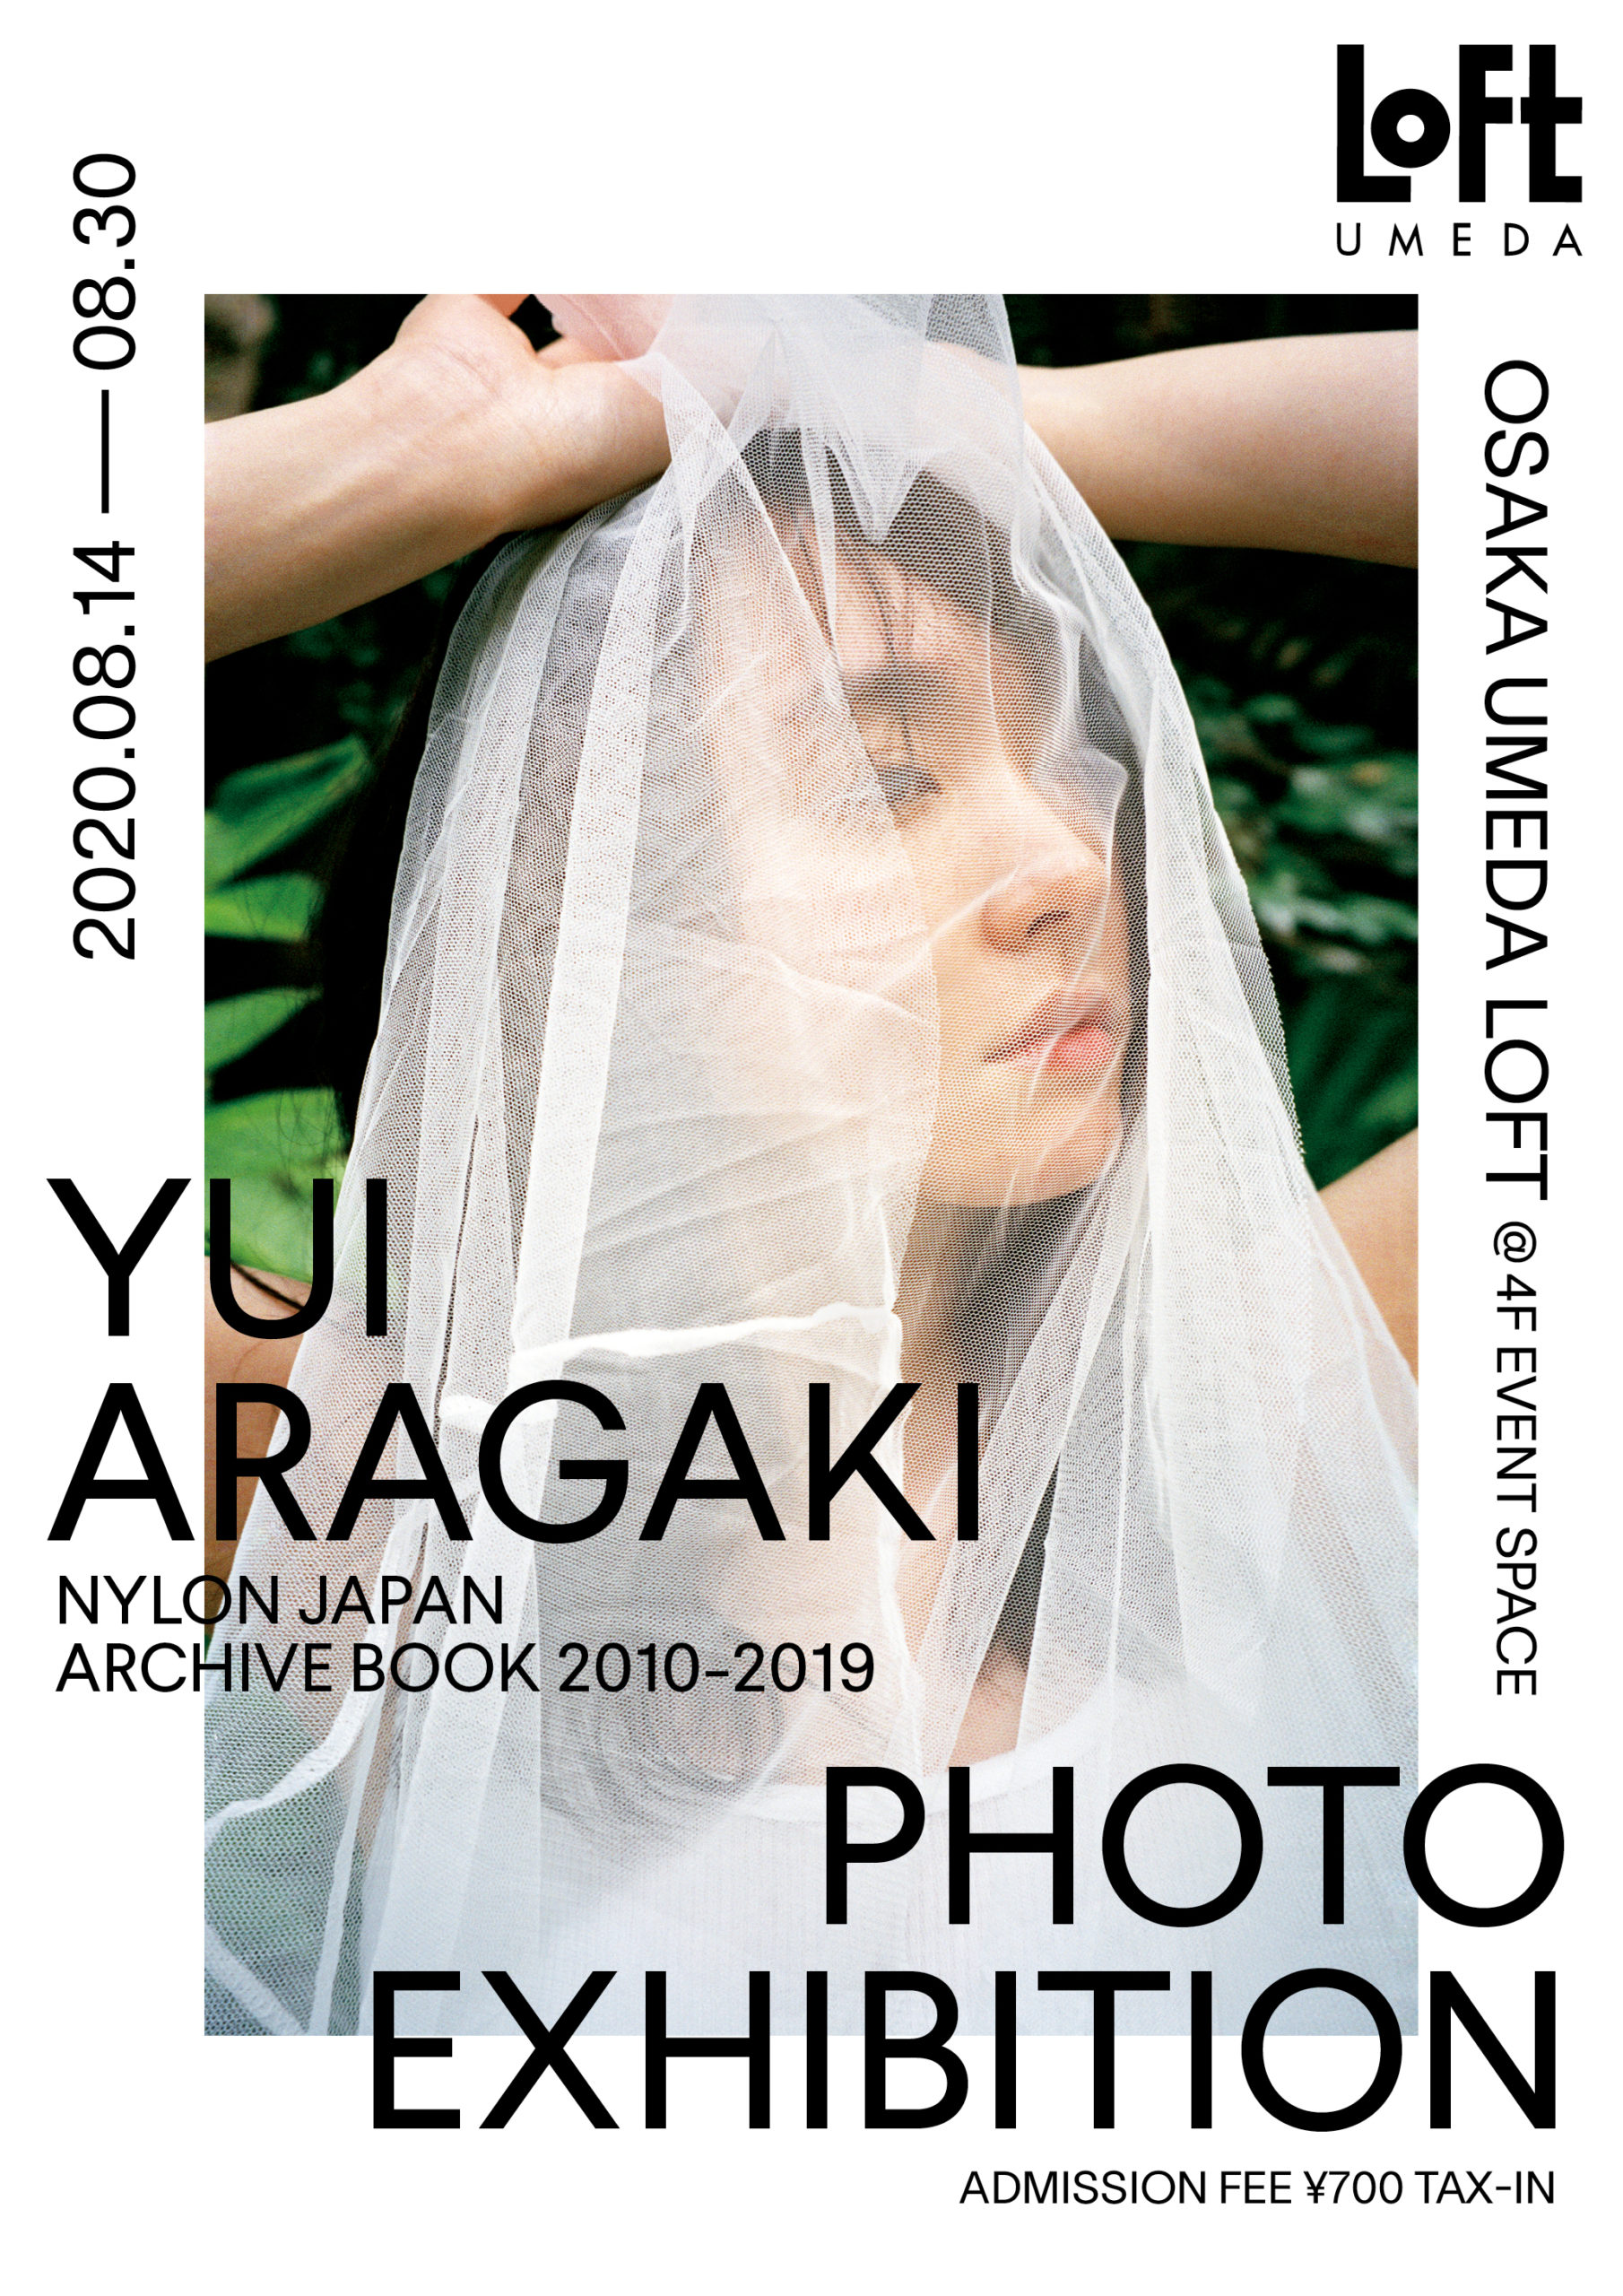 女優・新垣結衣の写真展「YUI ARAGAKI NYLON JAPAN ARCHIVE BOOK 2010-2019 PHOTO EXHIBITION」